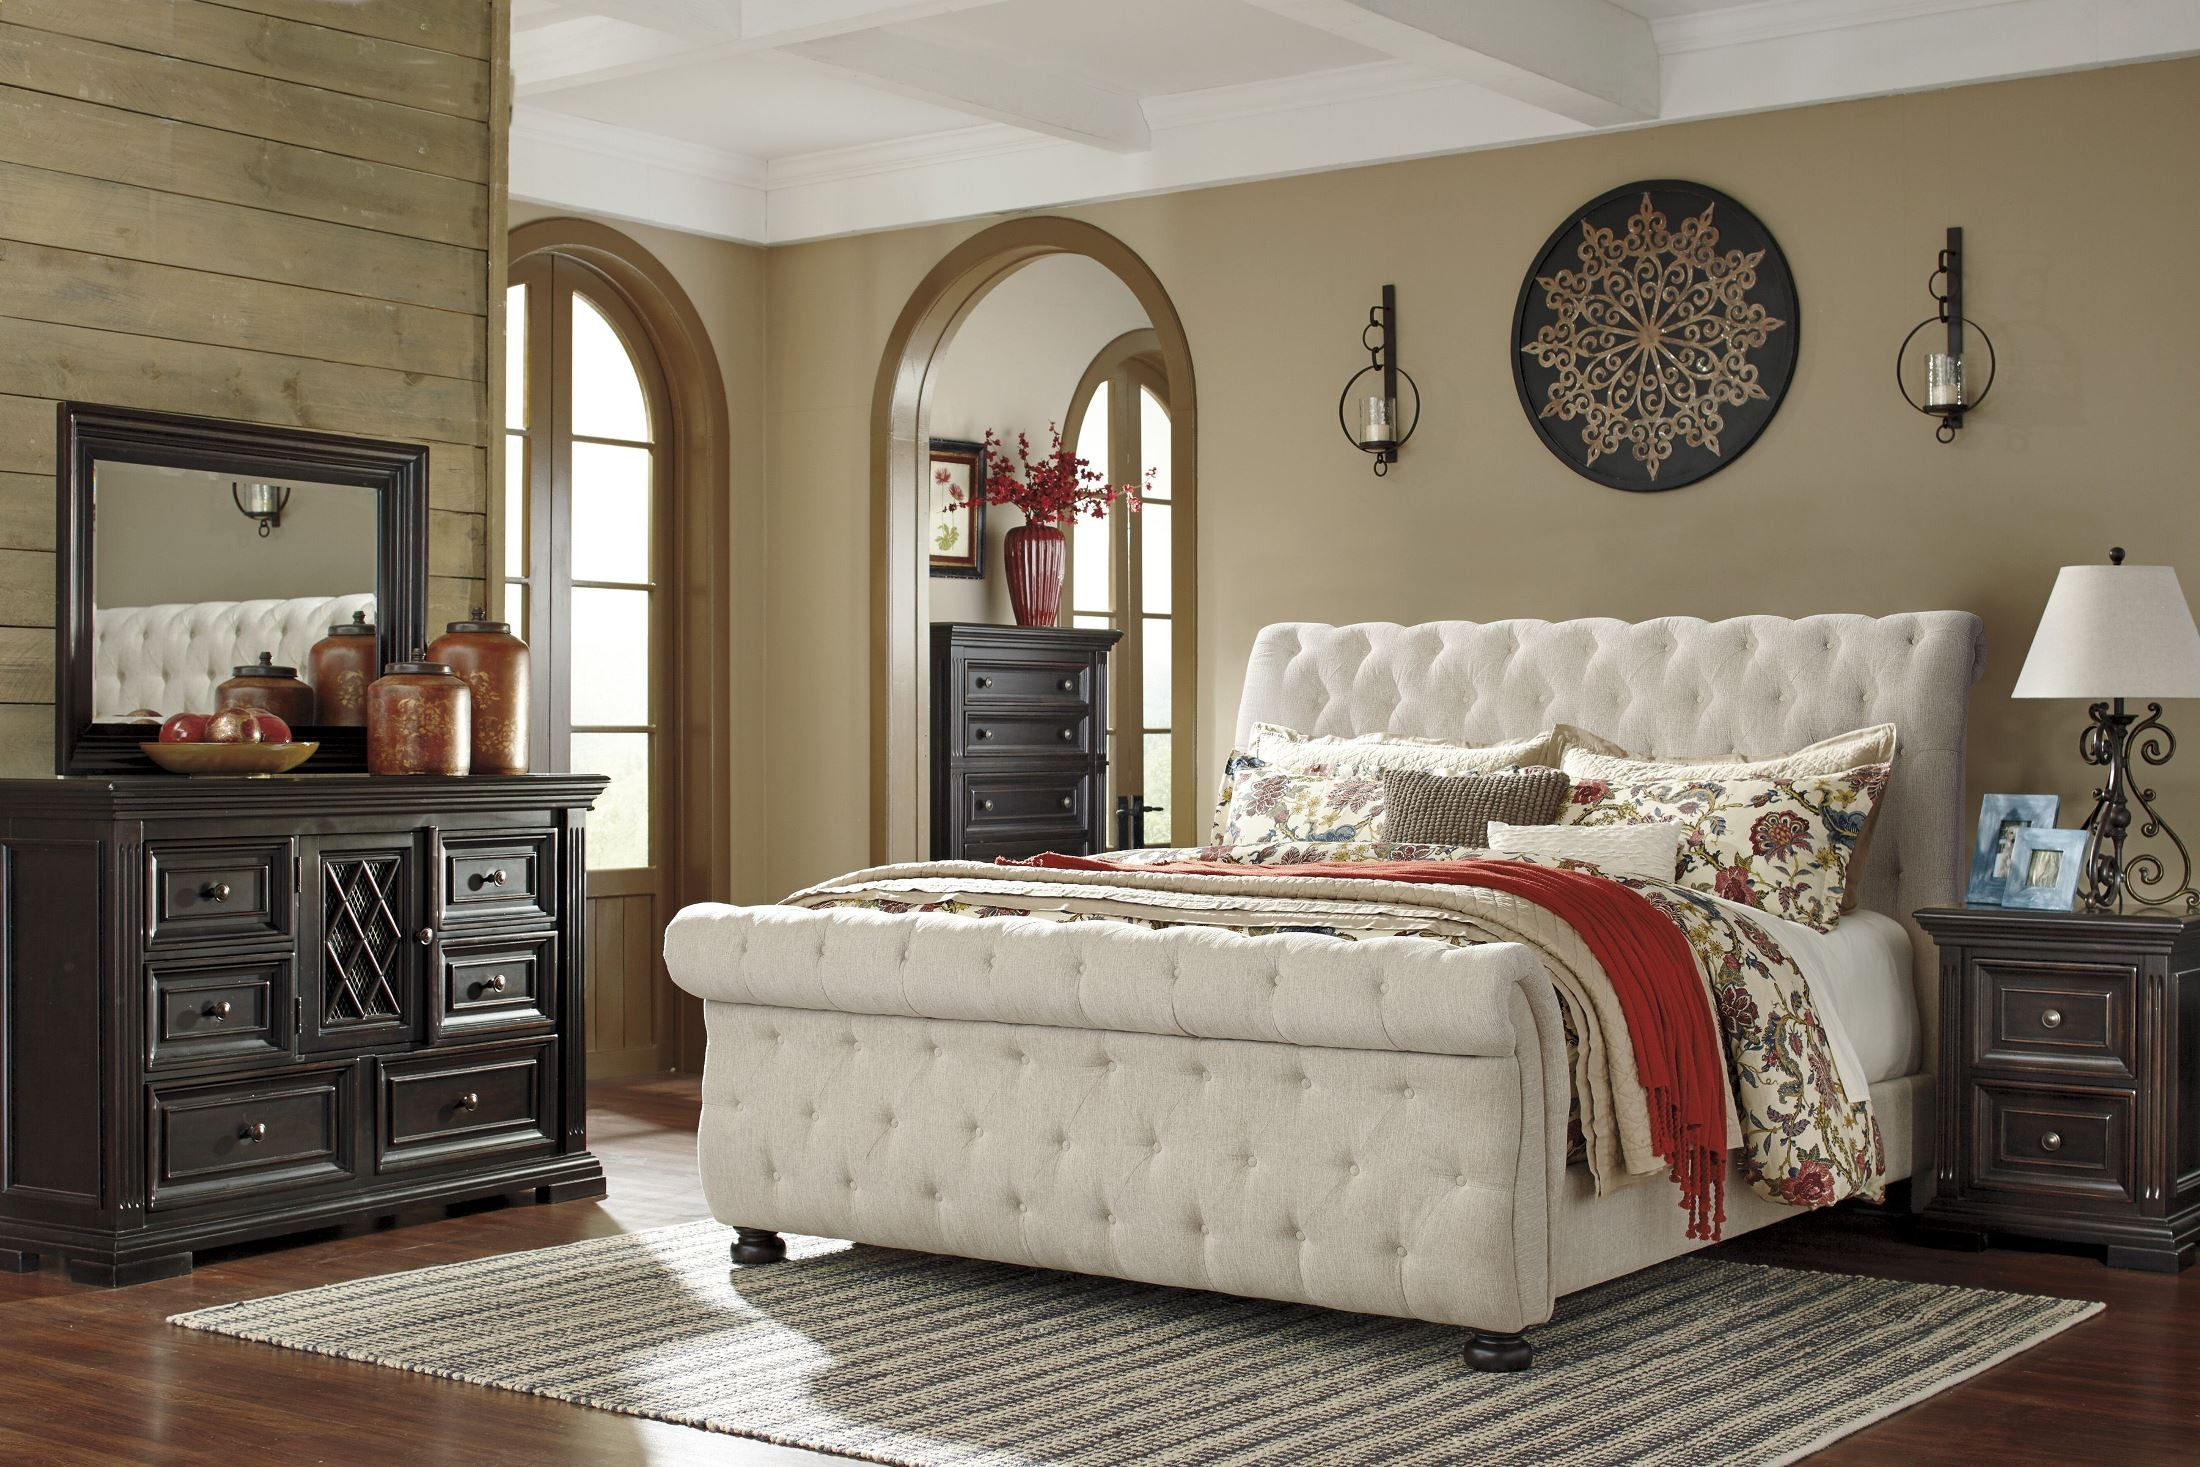 Marvelous King Bedroom Sets. 1681863 King Bedroom Sets